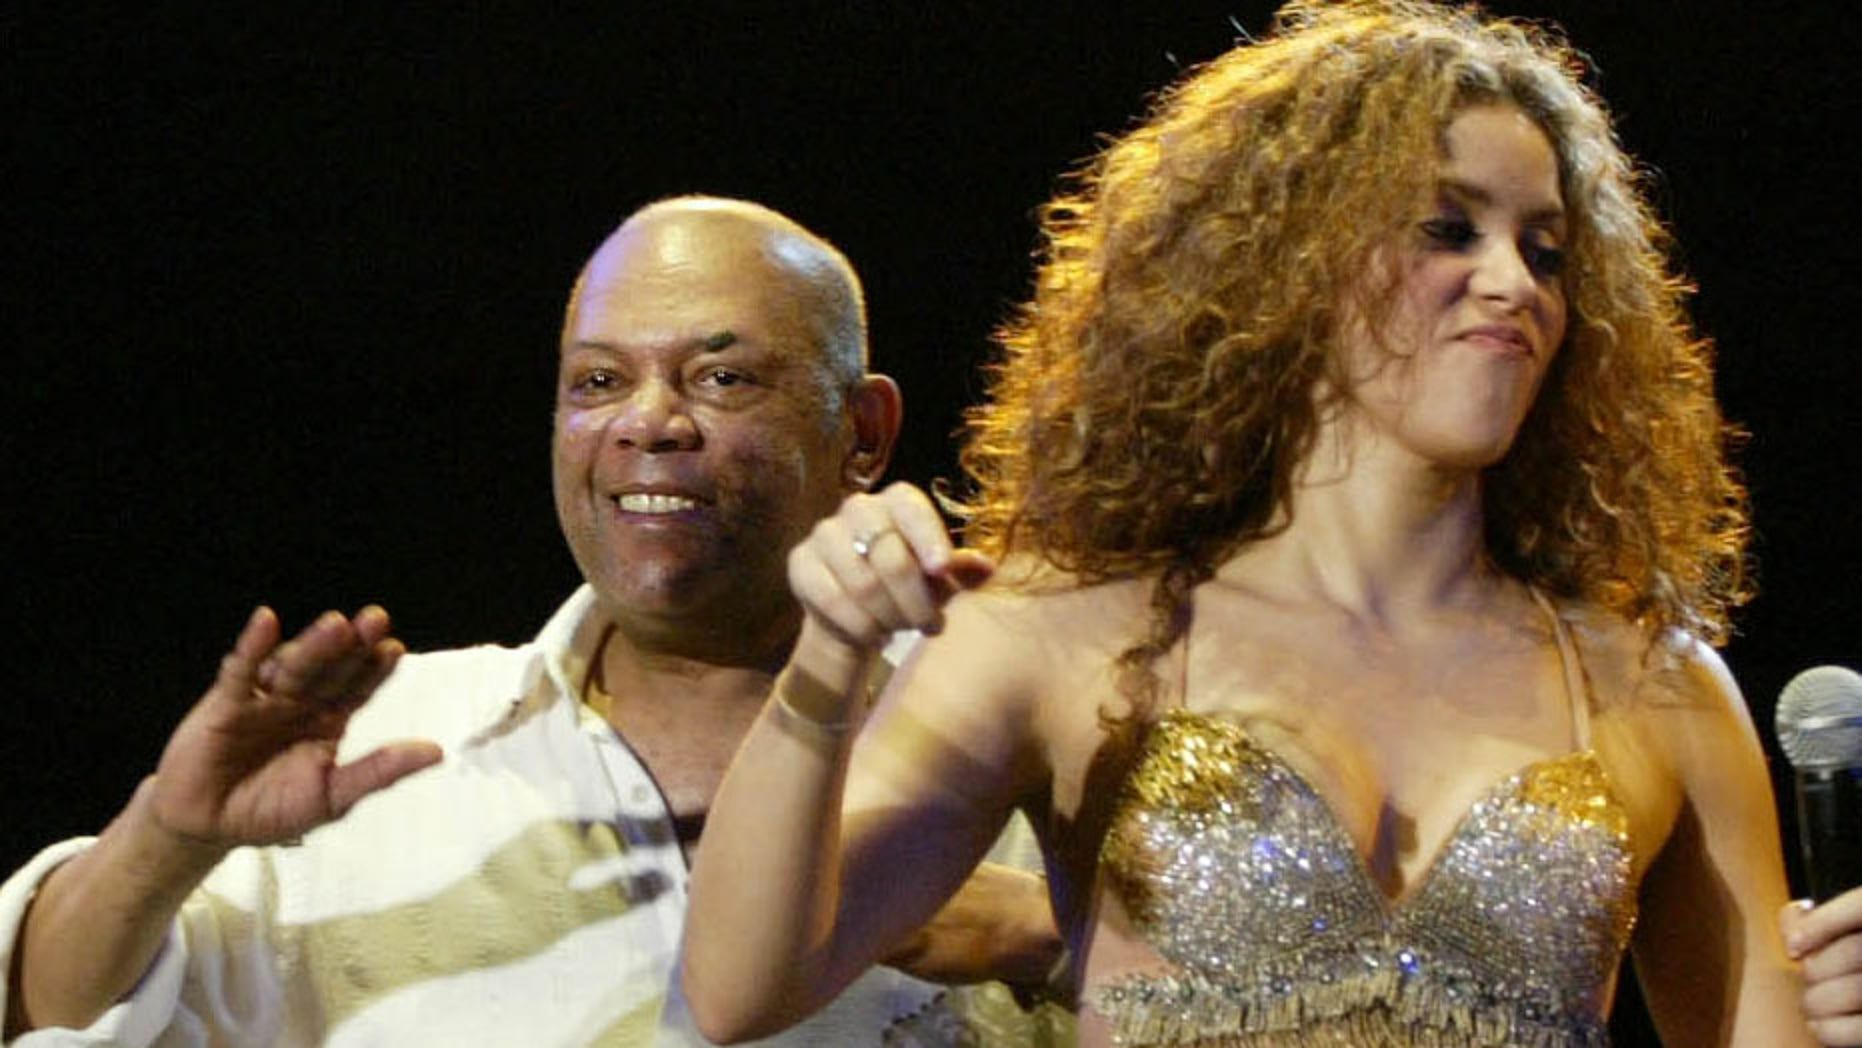 FILE- In this Nov. 15, 2006 file photo, Colombian pop singer Shakira performs with Joe Arroyo during her concert in Barranquilla, Colombia. The salsa singer died of complications following a hypertension crisis at a Barranquilla clinic. He was 55.  (AP Photo/William Fernando Martinez, File)